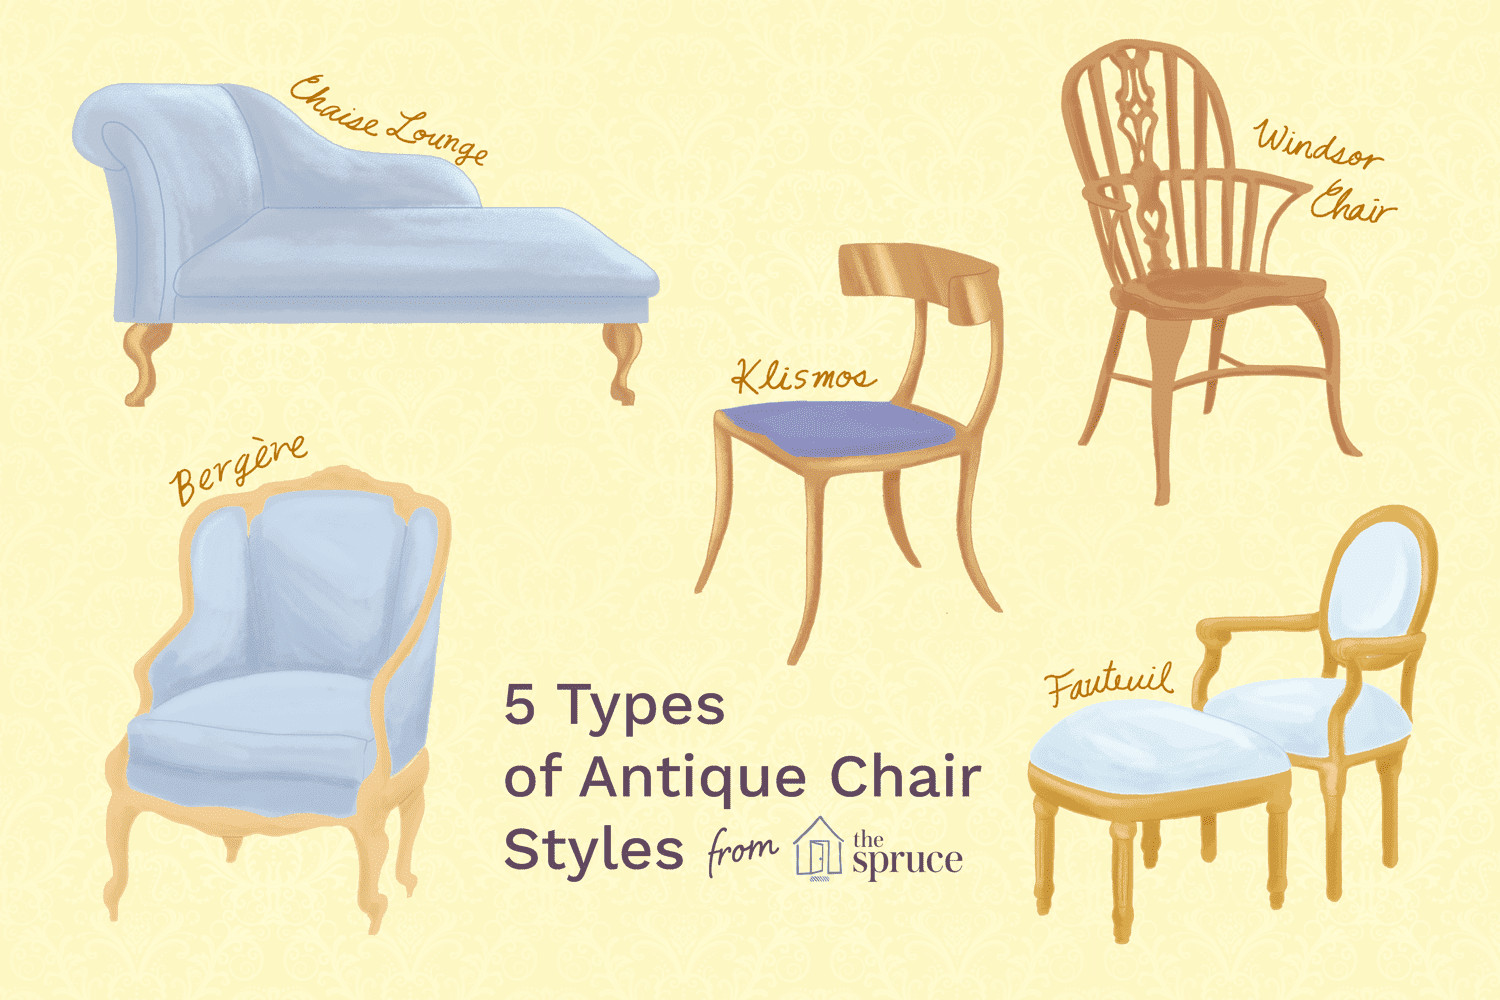 1940s Bedroom Furniture Styles New Learn to Identify Antique Furniture Chair Styles